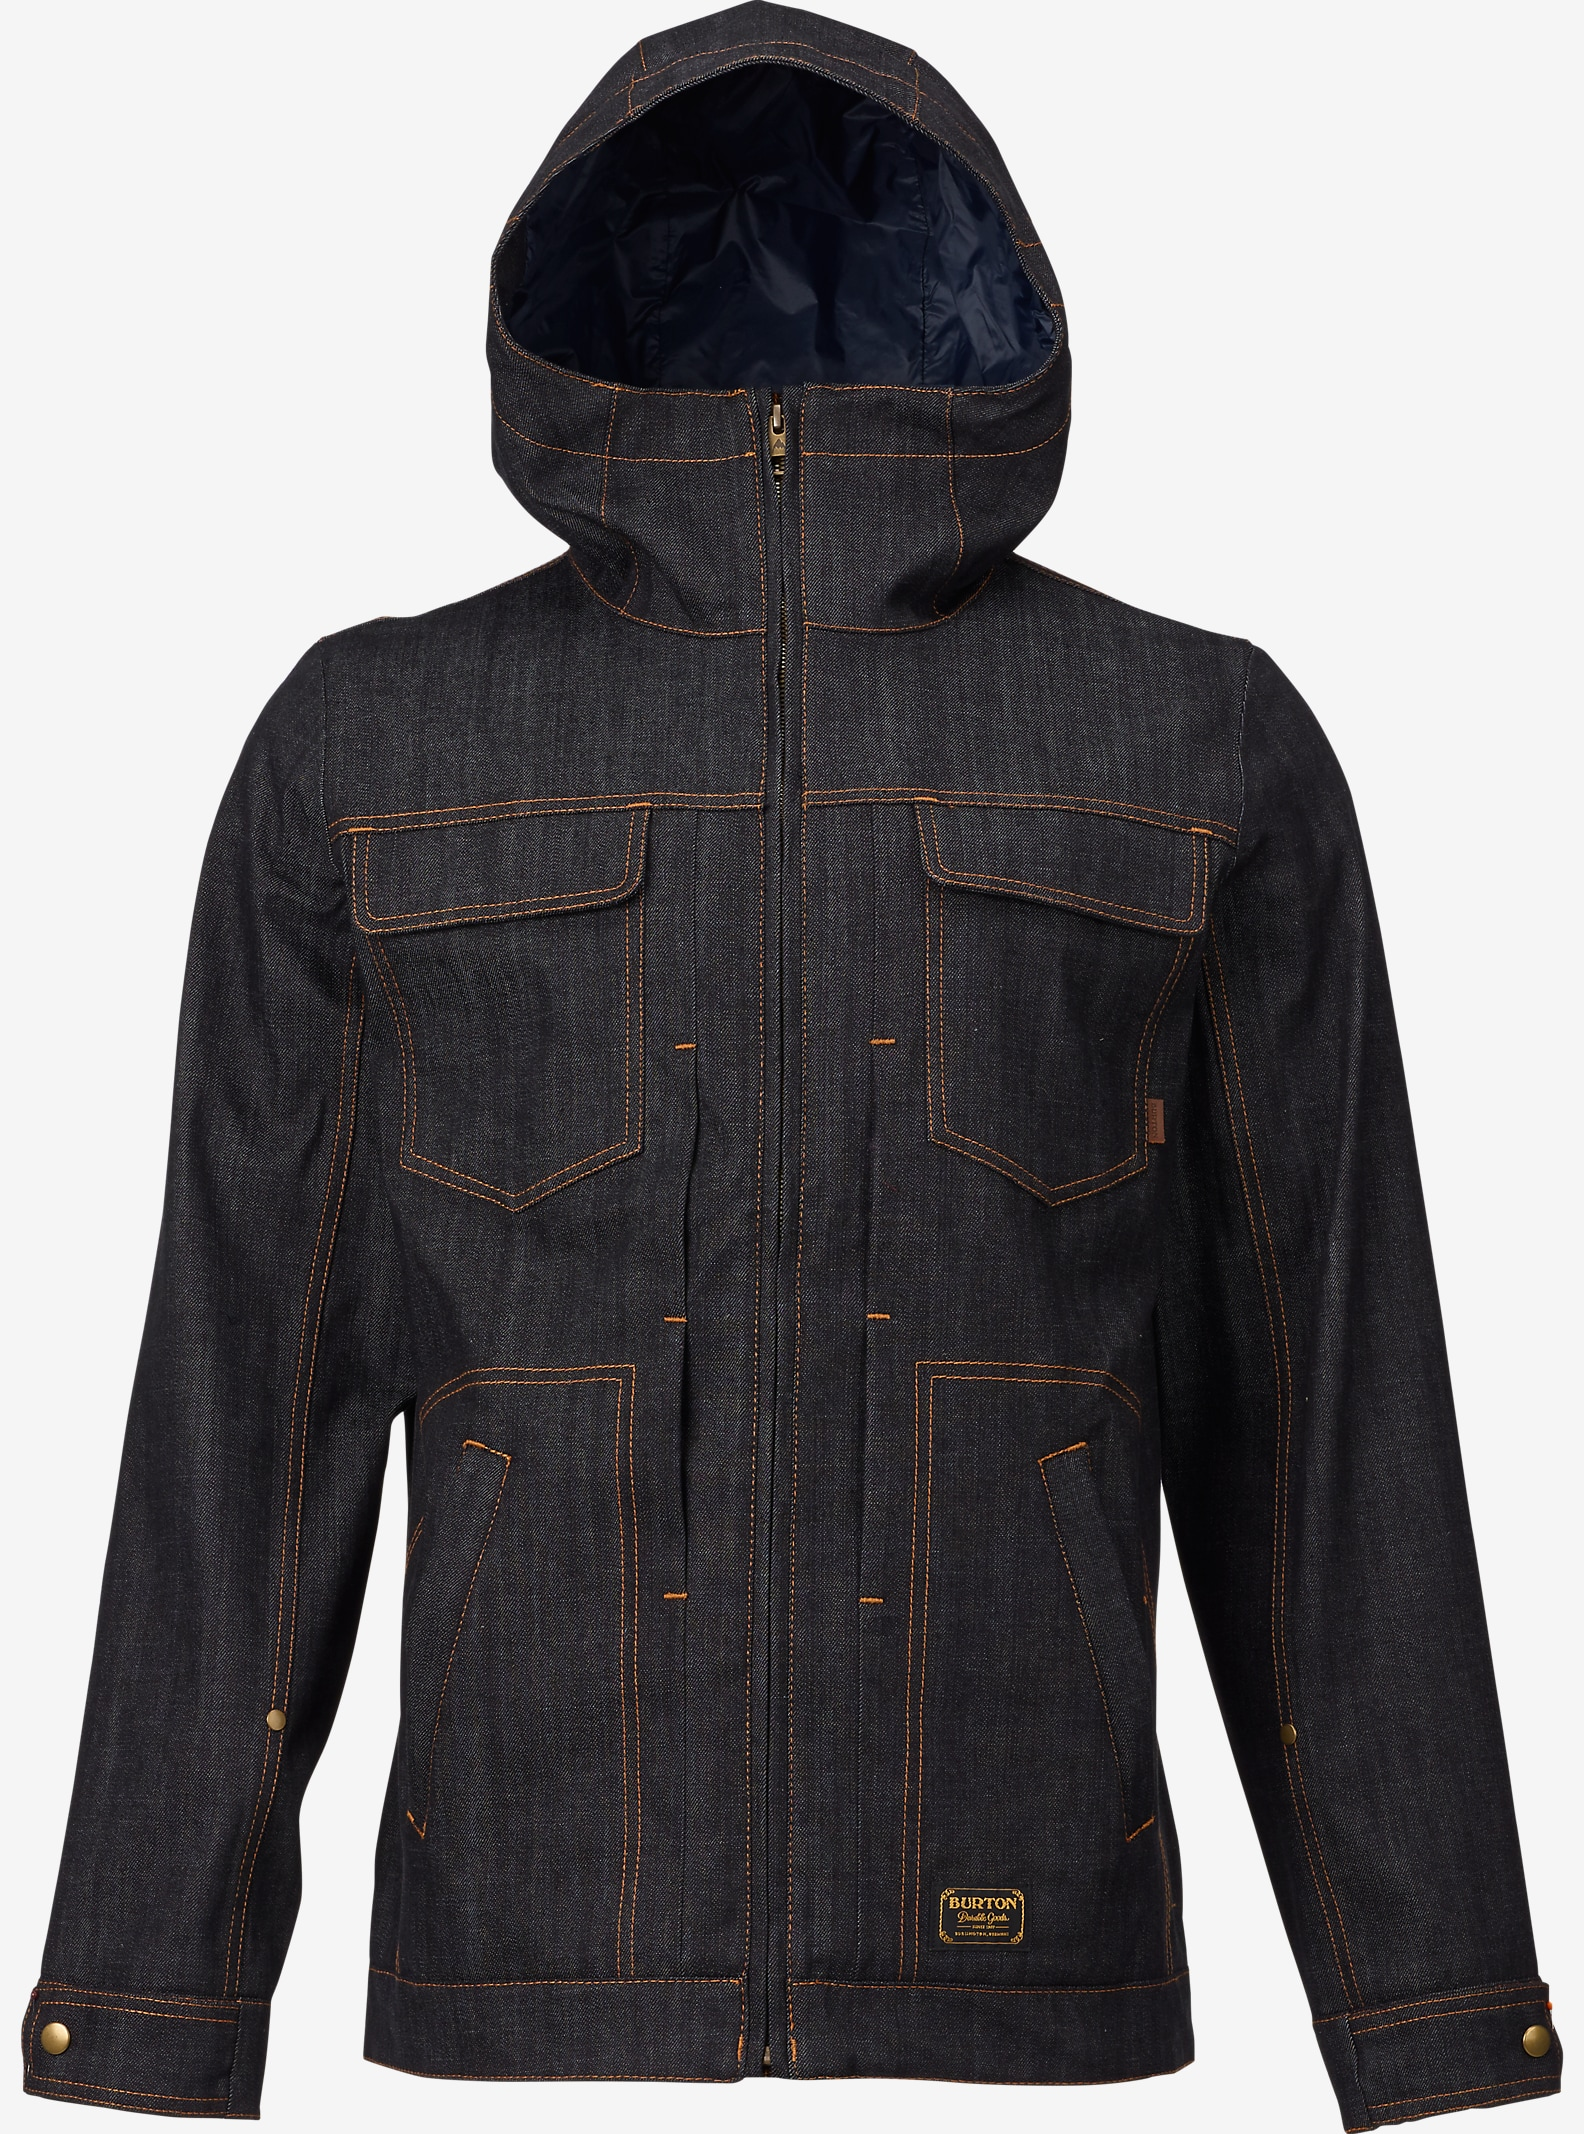 Burton Benson Jacket shown in Denim / Shiprock